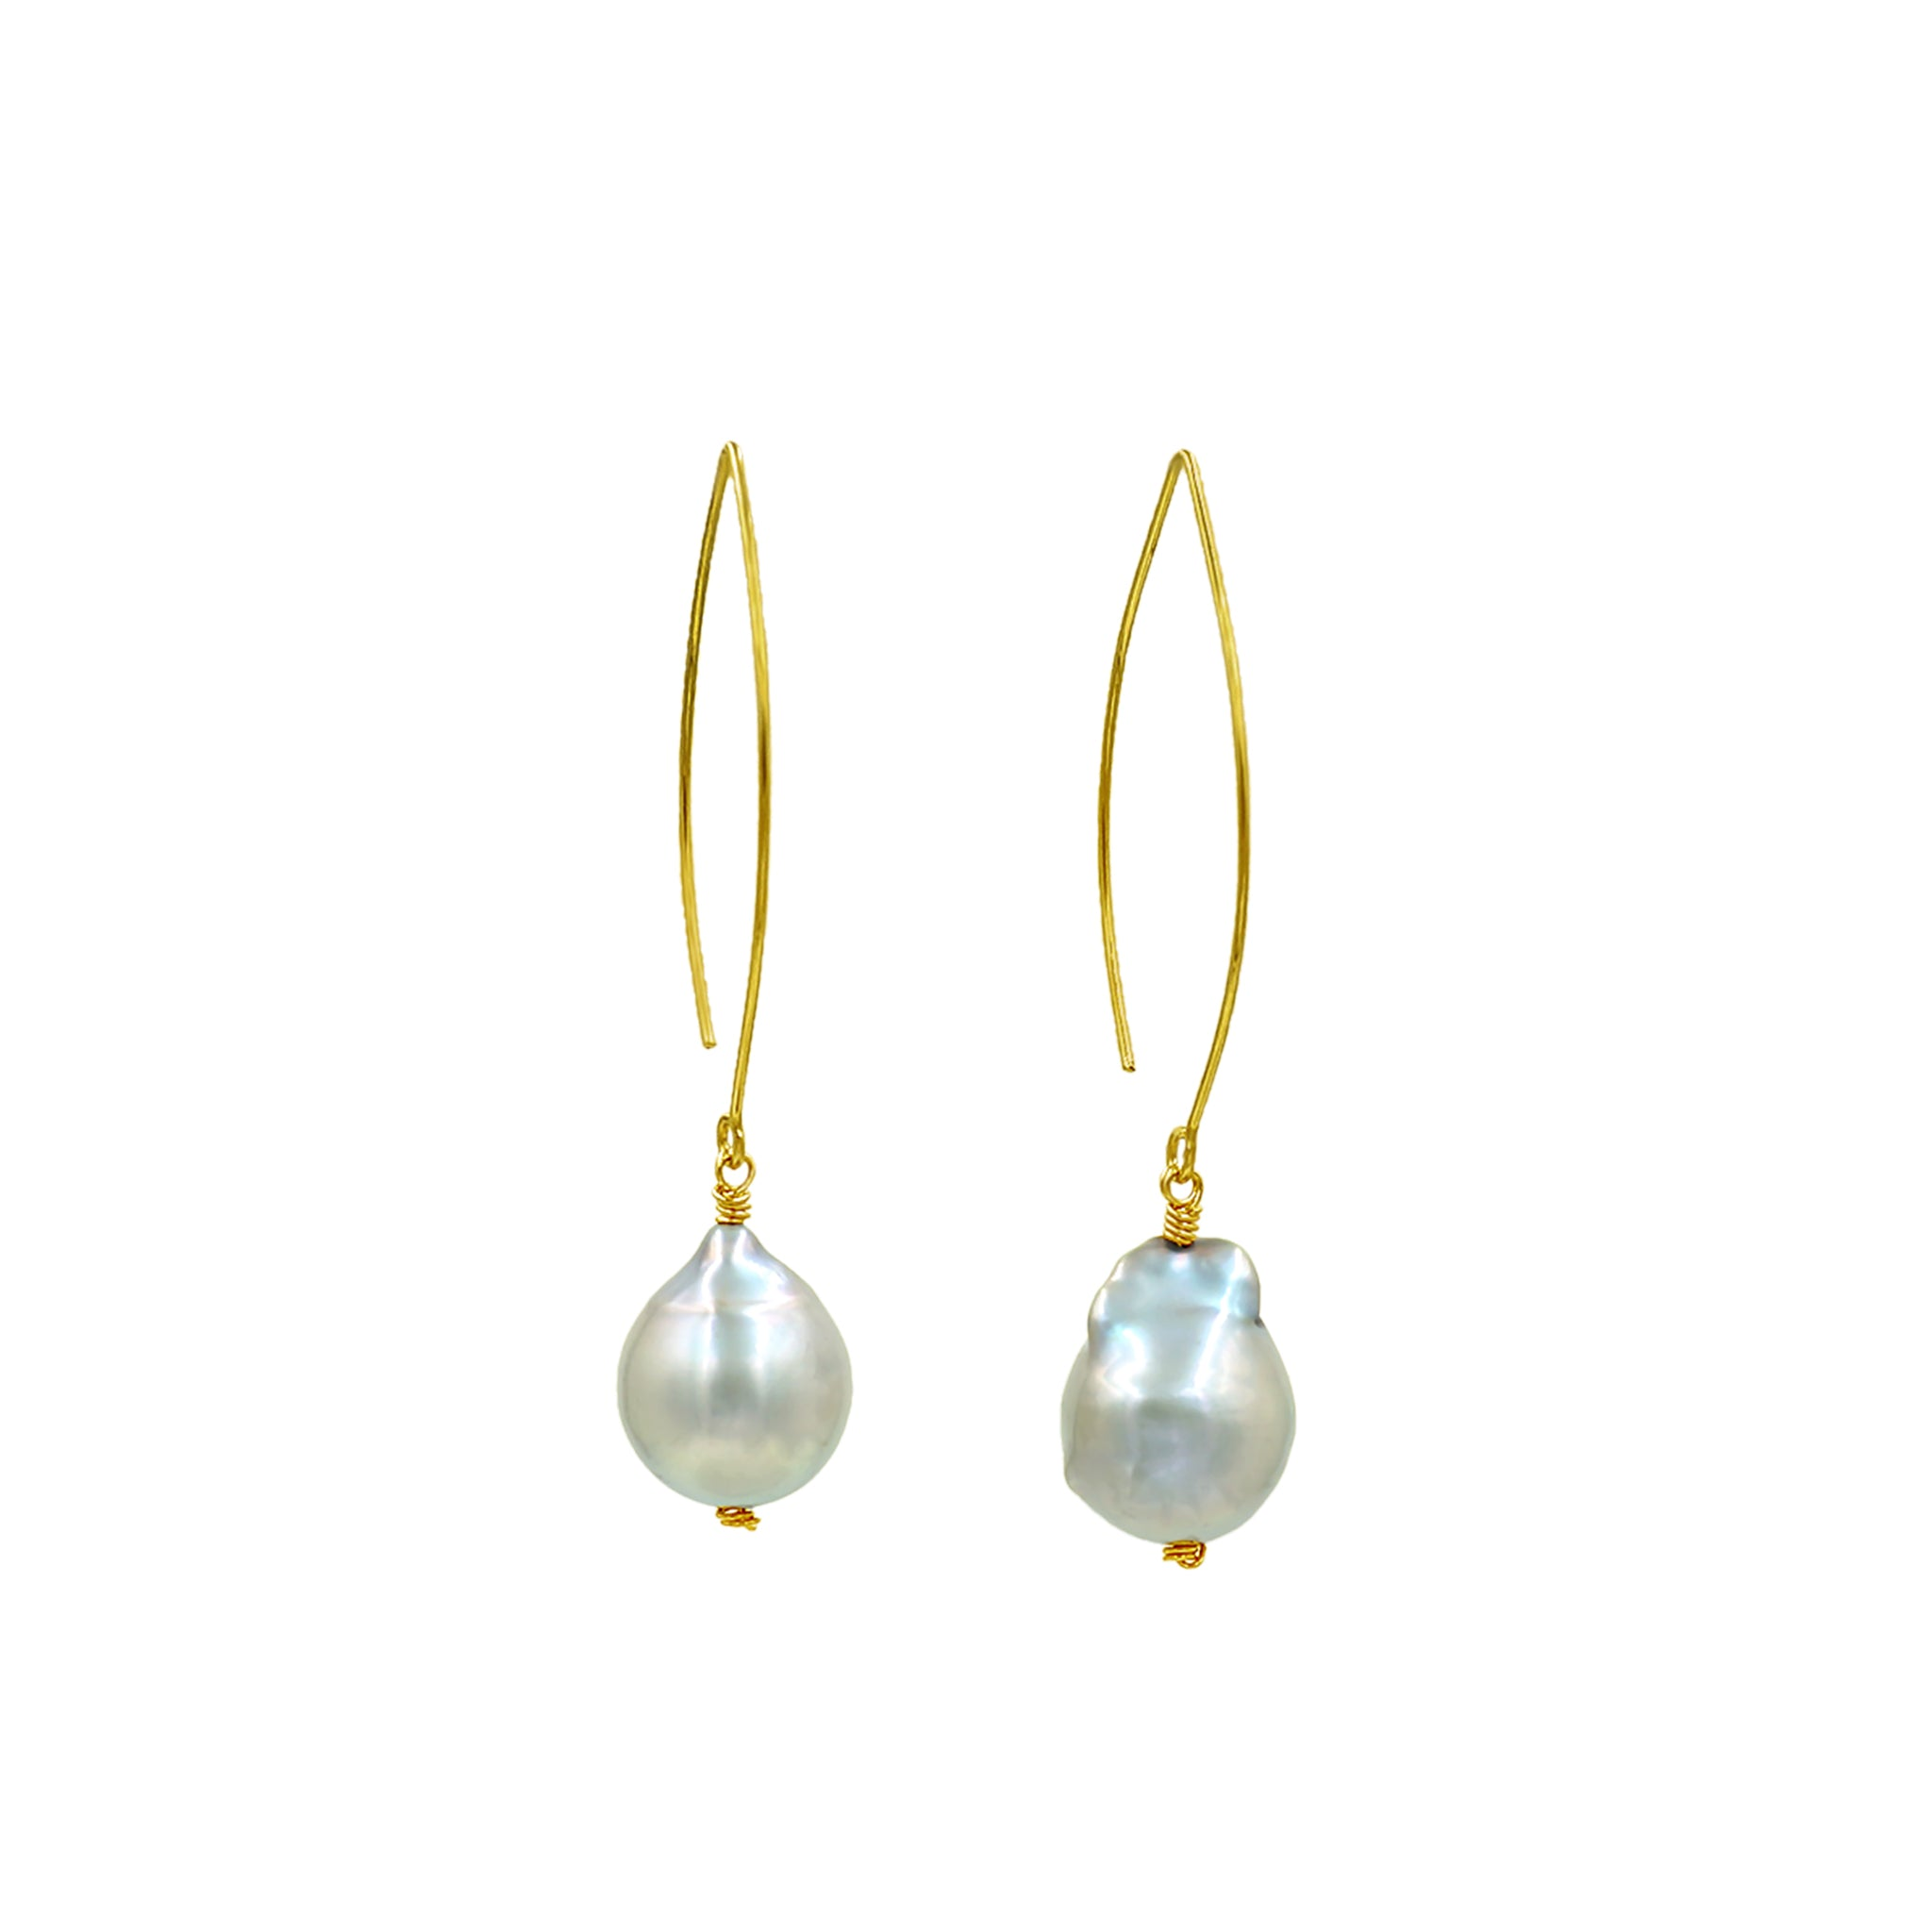 Big baroque fresh water pearl earrings - Sati Gems Hawaii